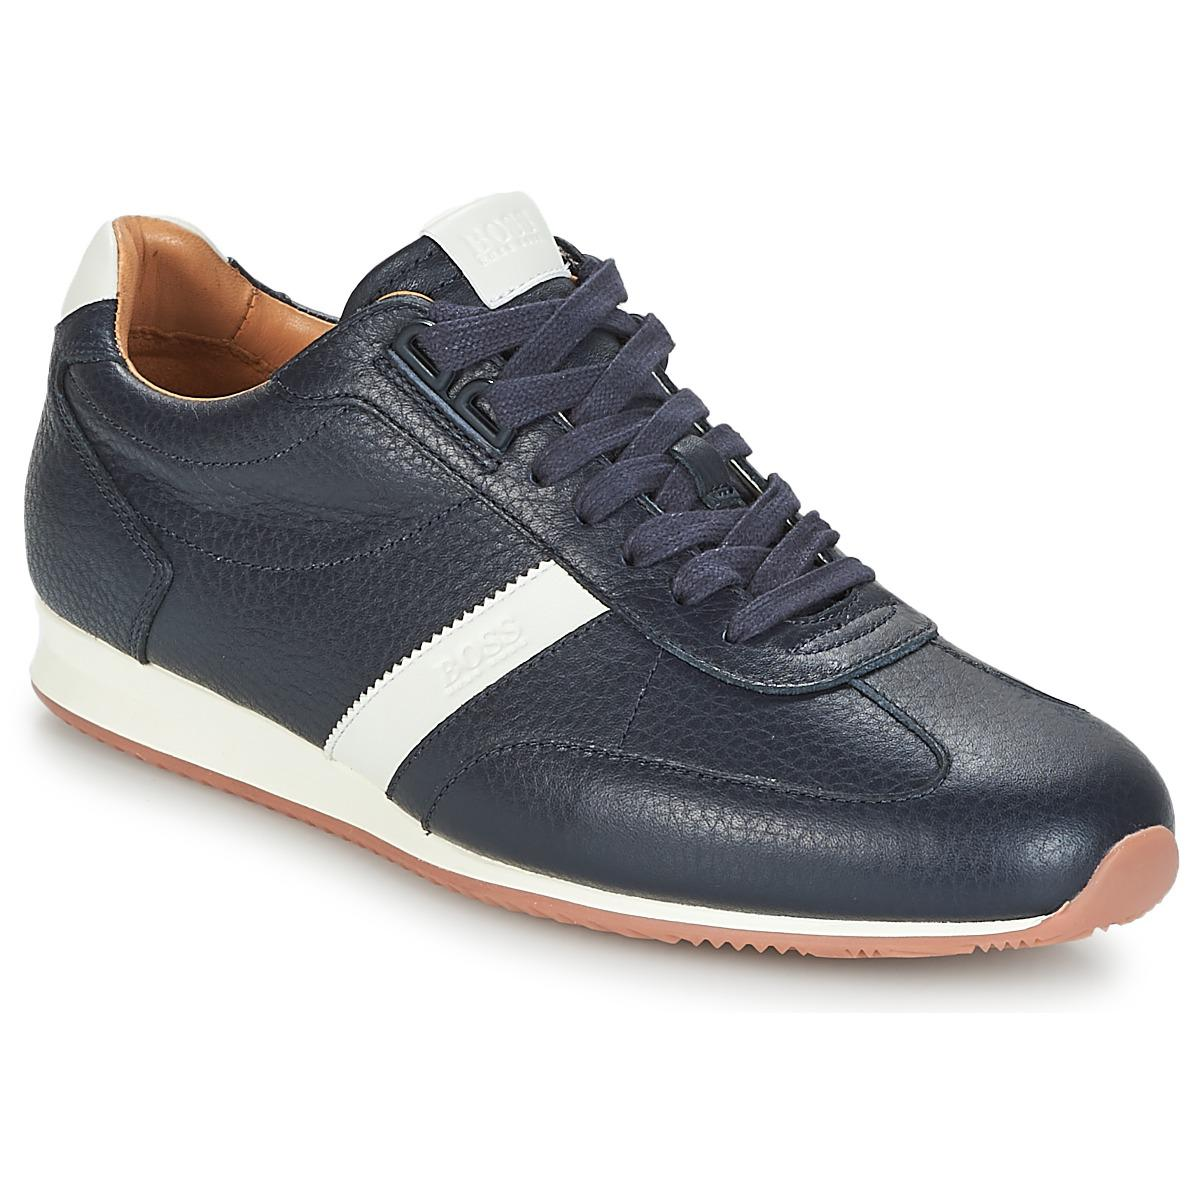 85e4329bffb BOSS by Hugo Boss Orland Lowp Tb Shoes (trainers) in Blue for Men - Lyst